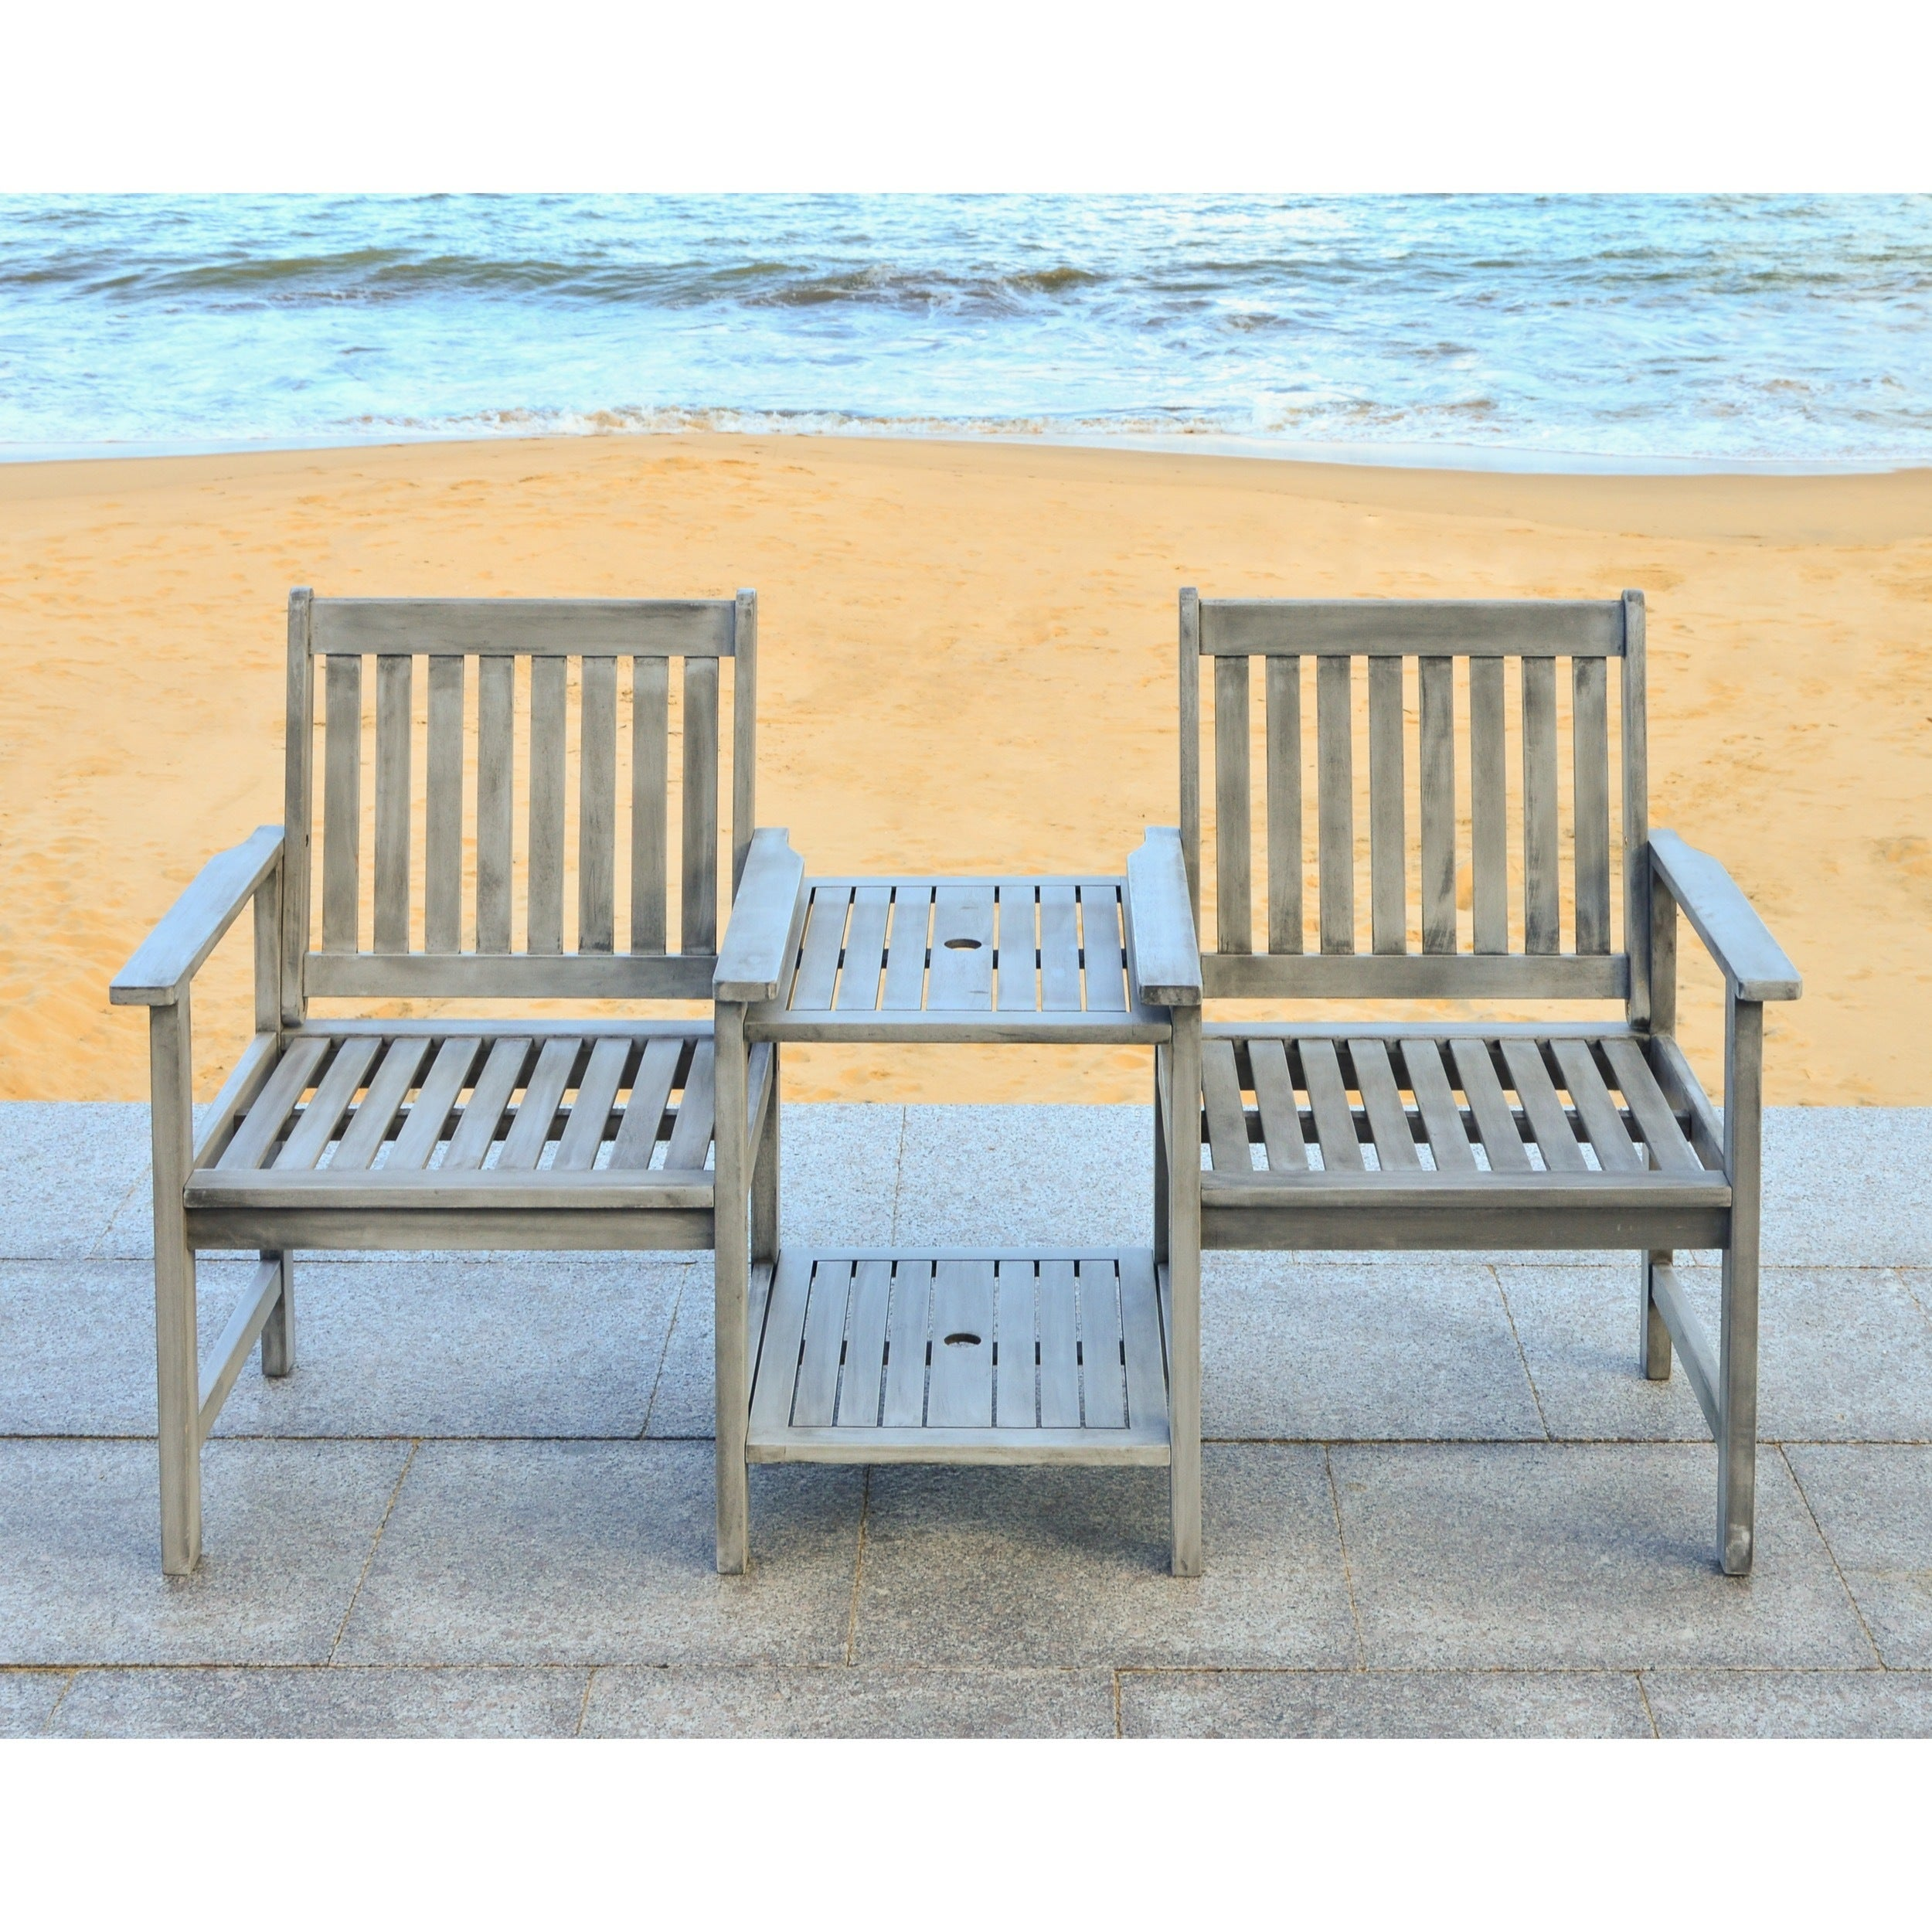 bench all cushions our wicker of acacia weather outdoor and wood woven bining design white seat